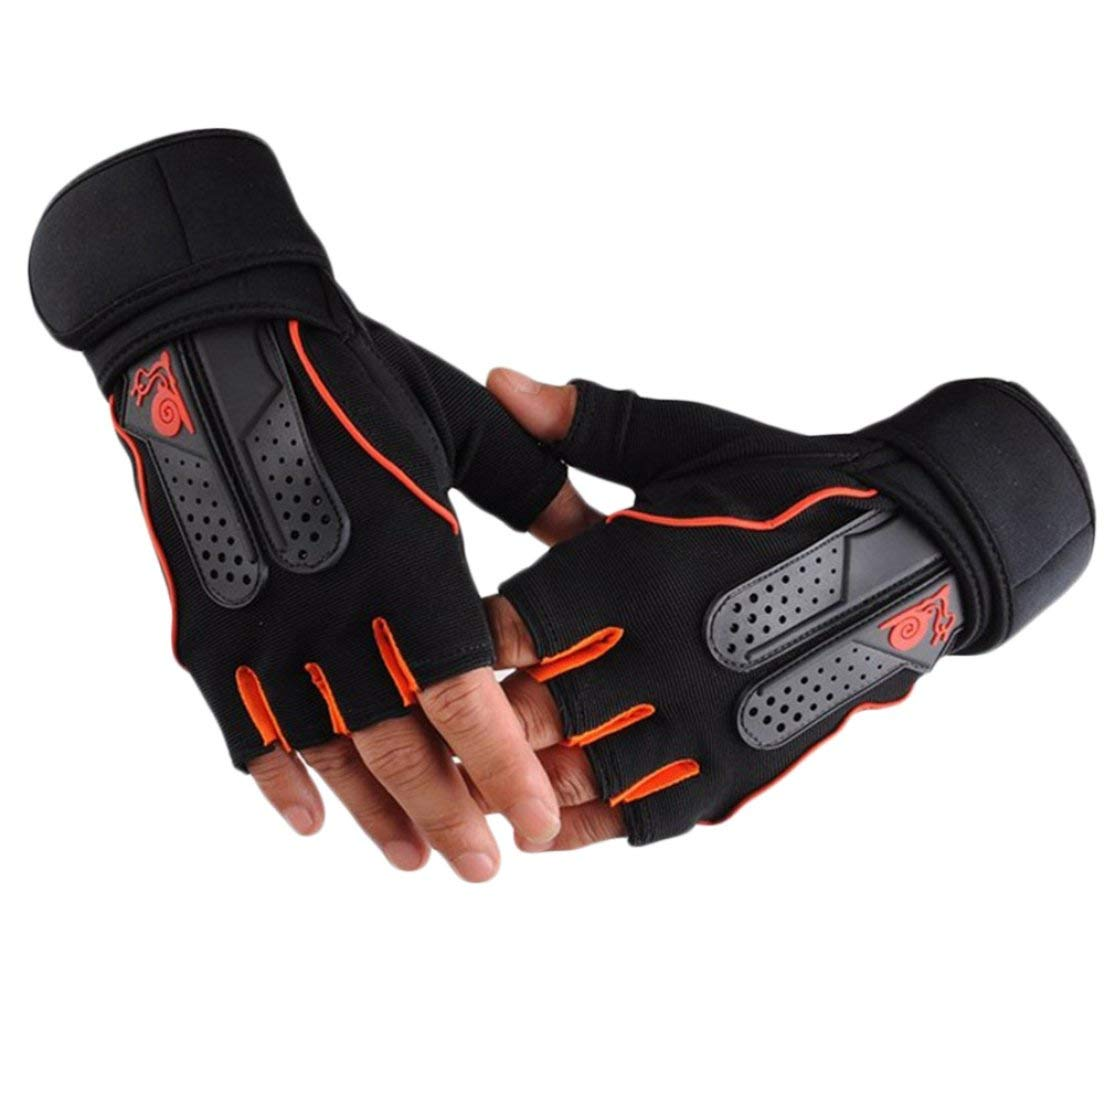 Kaemma Men Women Sports Gym Gloves Half Finger Breathable Weightlifting Fitness Gloves Dumbbell Weight Lifting Gym Gloves Size M//L//XL